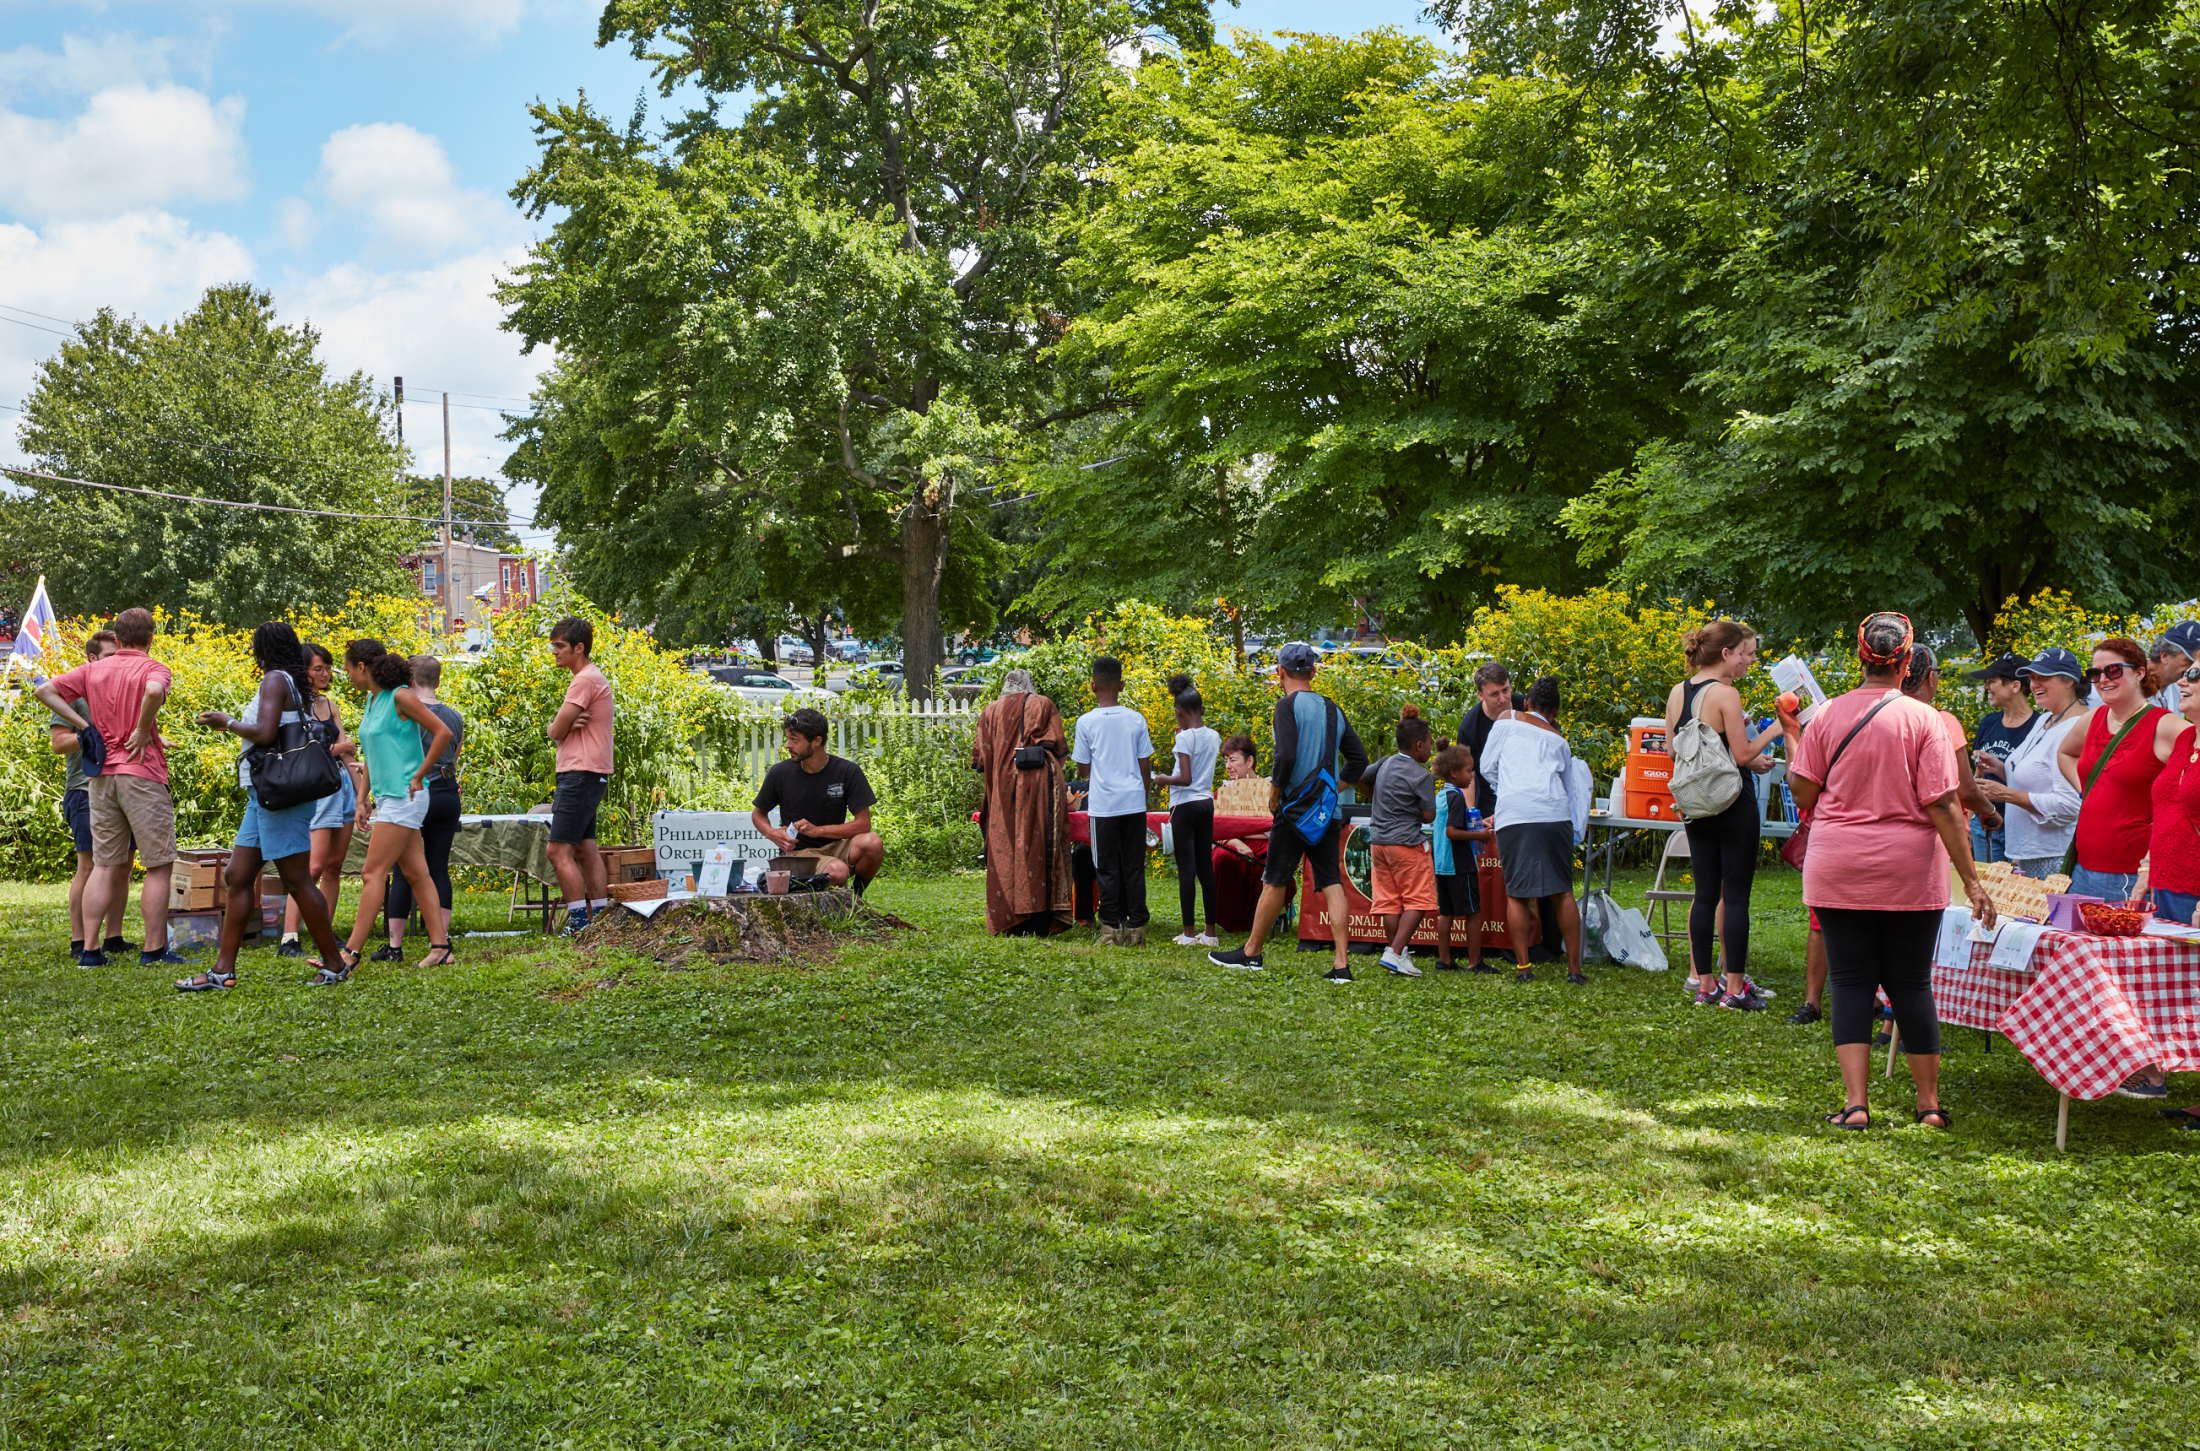 Art and Documentary Photography - Loading 04-08-18_WoodfordMansion-PeachFestival_258.png